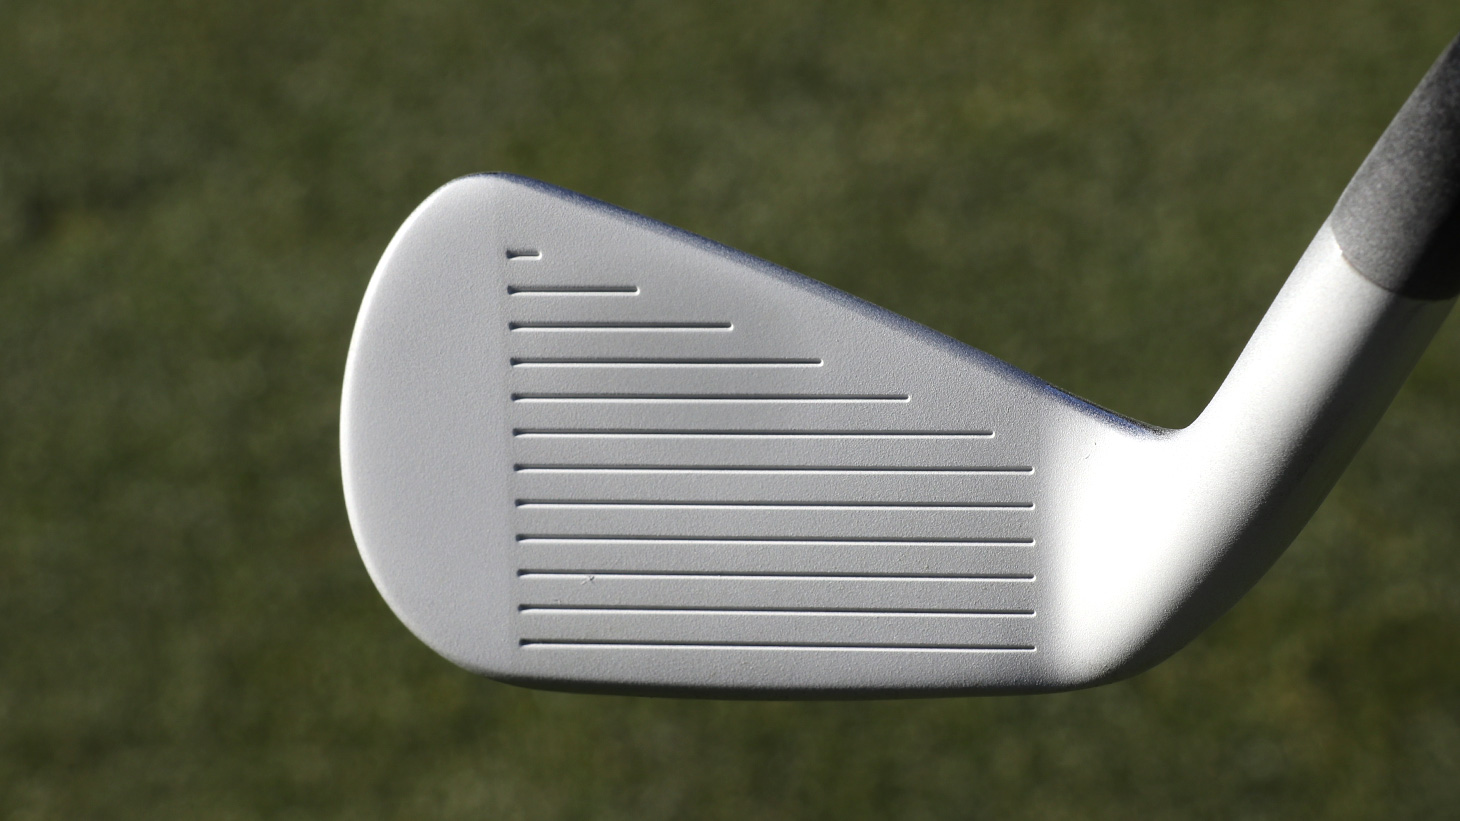 Club face after a thin coating of foot spray.